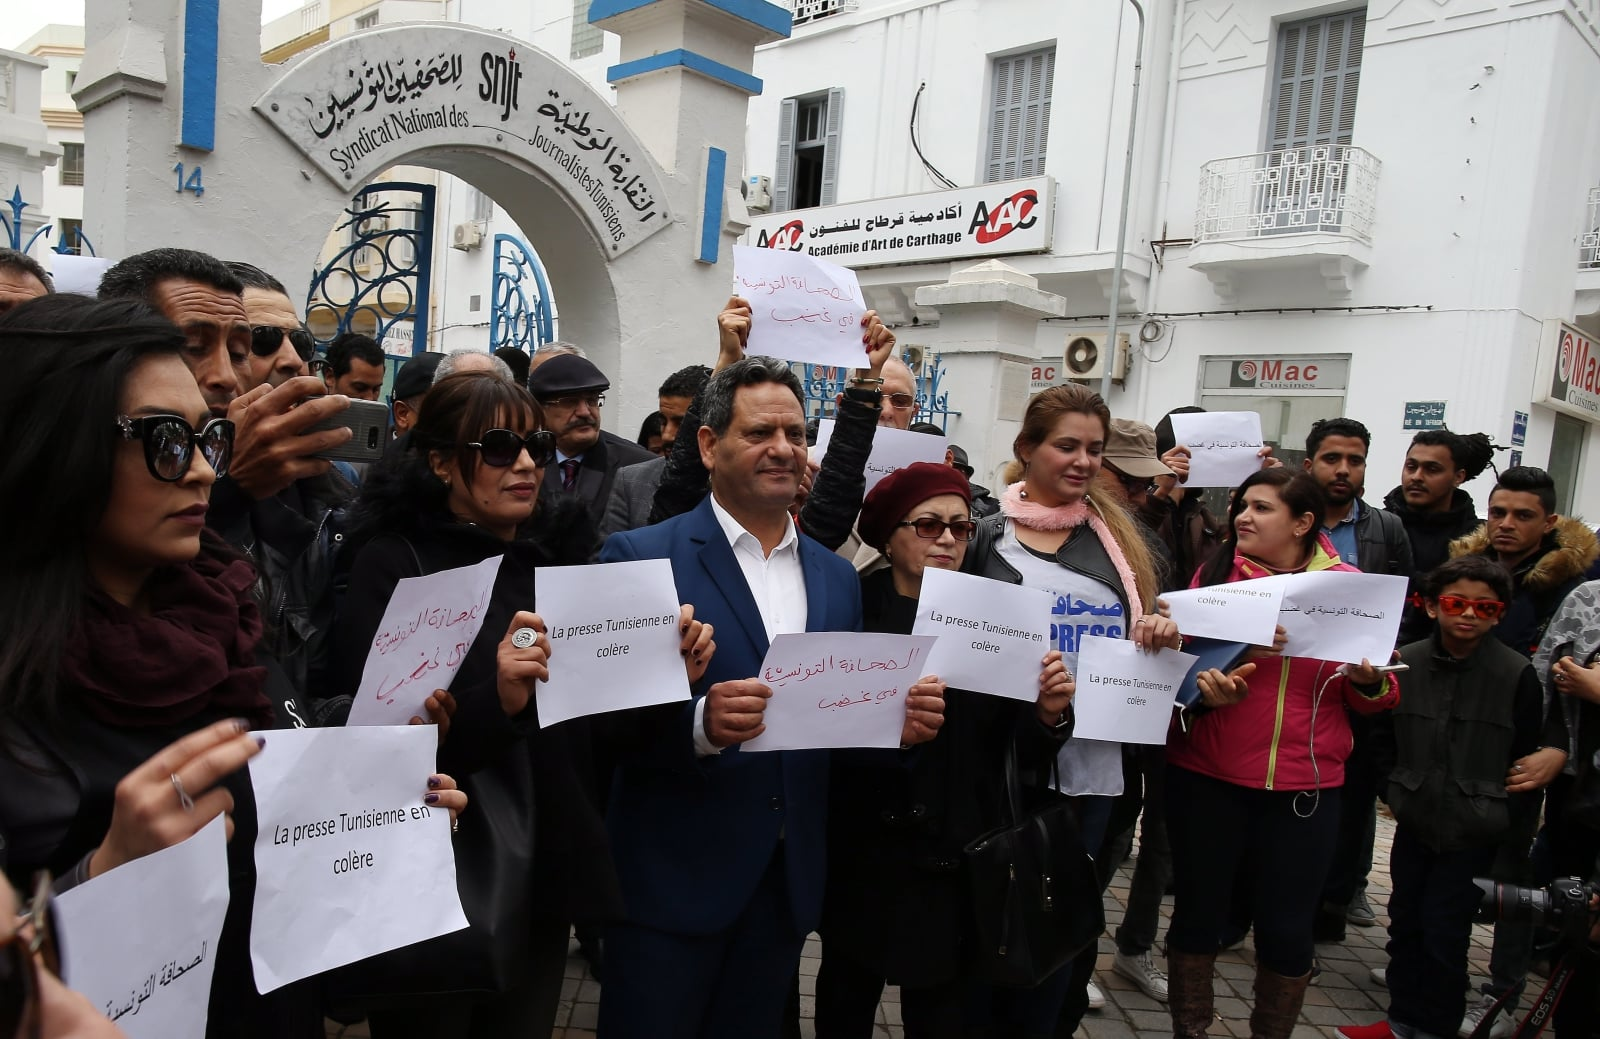 epa06492185 Tunisian journalists wearing red armbands hold signs reading in Arabic and French 'the Tunisian press is angry' during a protest outside the headquarters of the National Union of Tunisian Journalists (SNJT) in Tunis, Tunisia, 02 February 2018. According to reports, journalists gathered to protest against what they describe as 'threats and intimidation' by authorities against those covering security operations or being critical of state institutions.  EPA/MOHAMED MESSARA Dostawca: PAP/EPA.